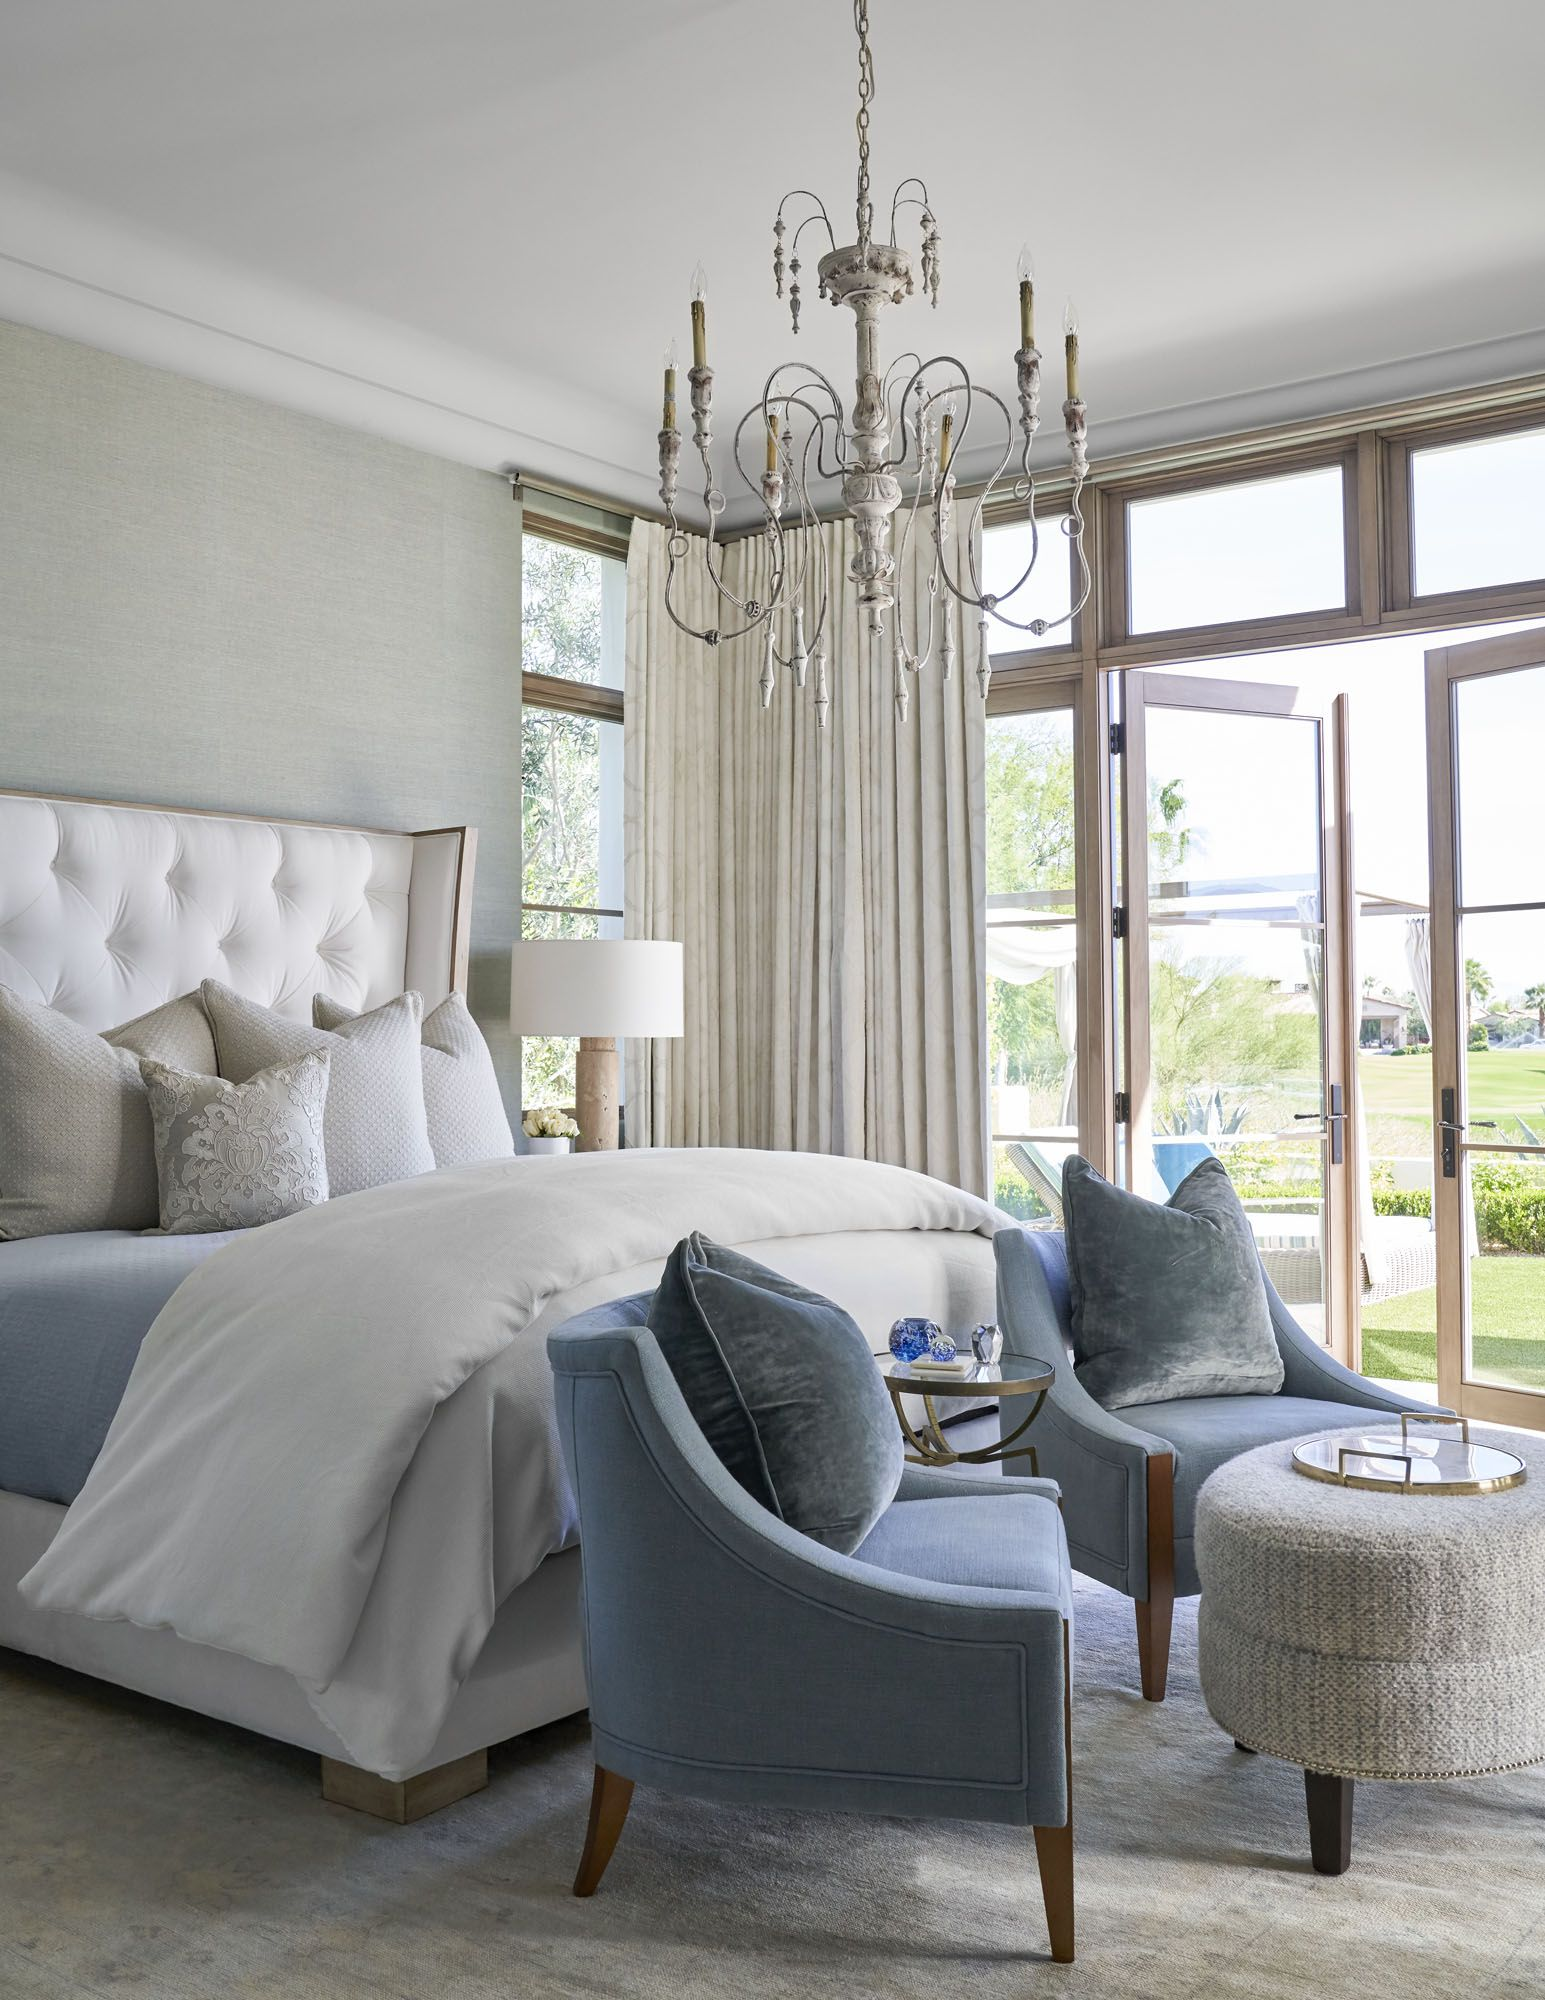 Classic Transitional Bedroom Contemporary Bedroom Contemporary Bedroom Design Contemporary Master Bedroom Design Ideas Transitional bedroom decorating ideas